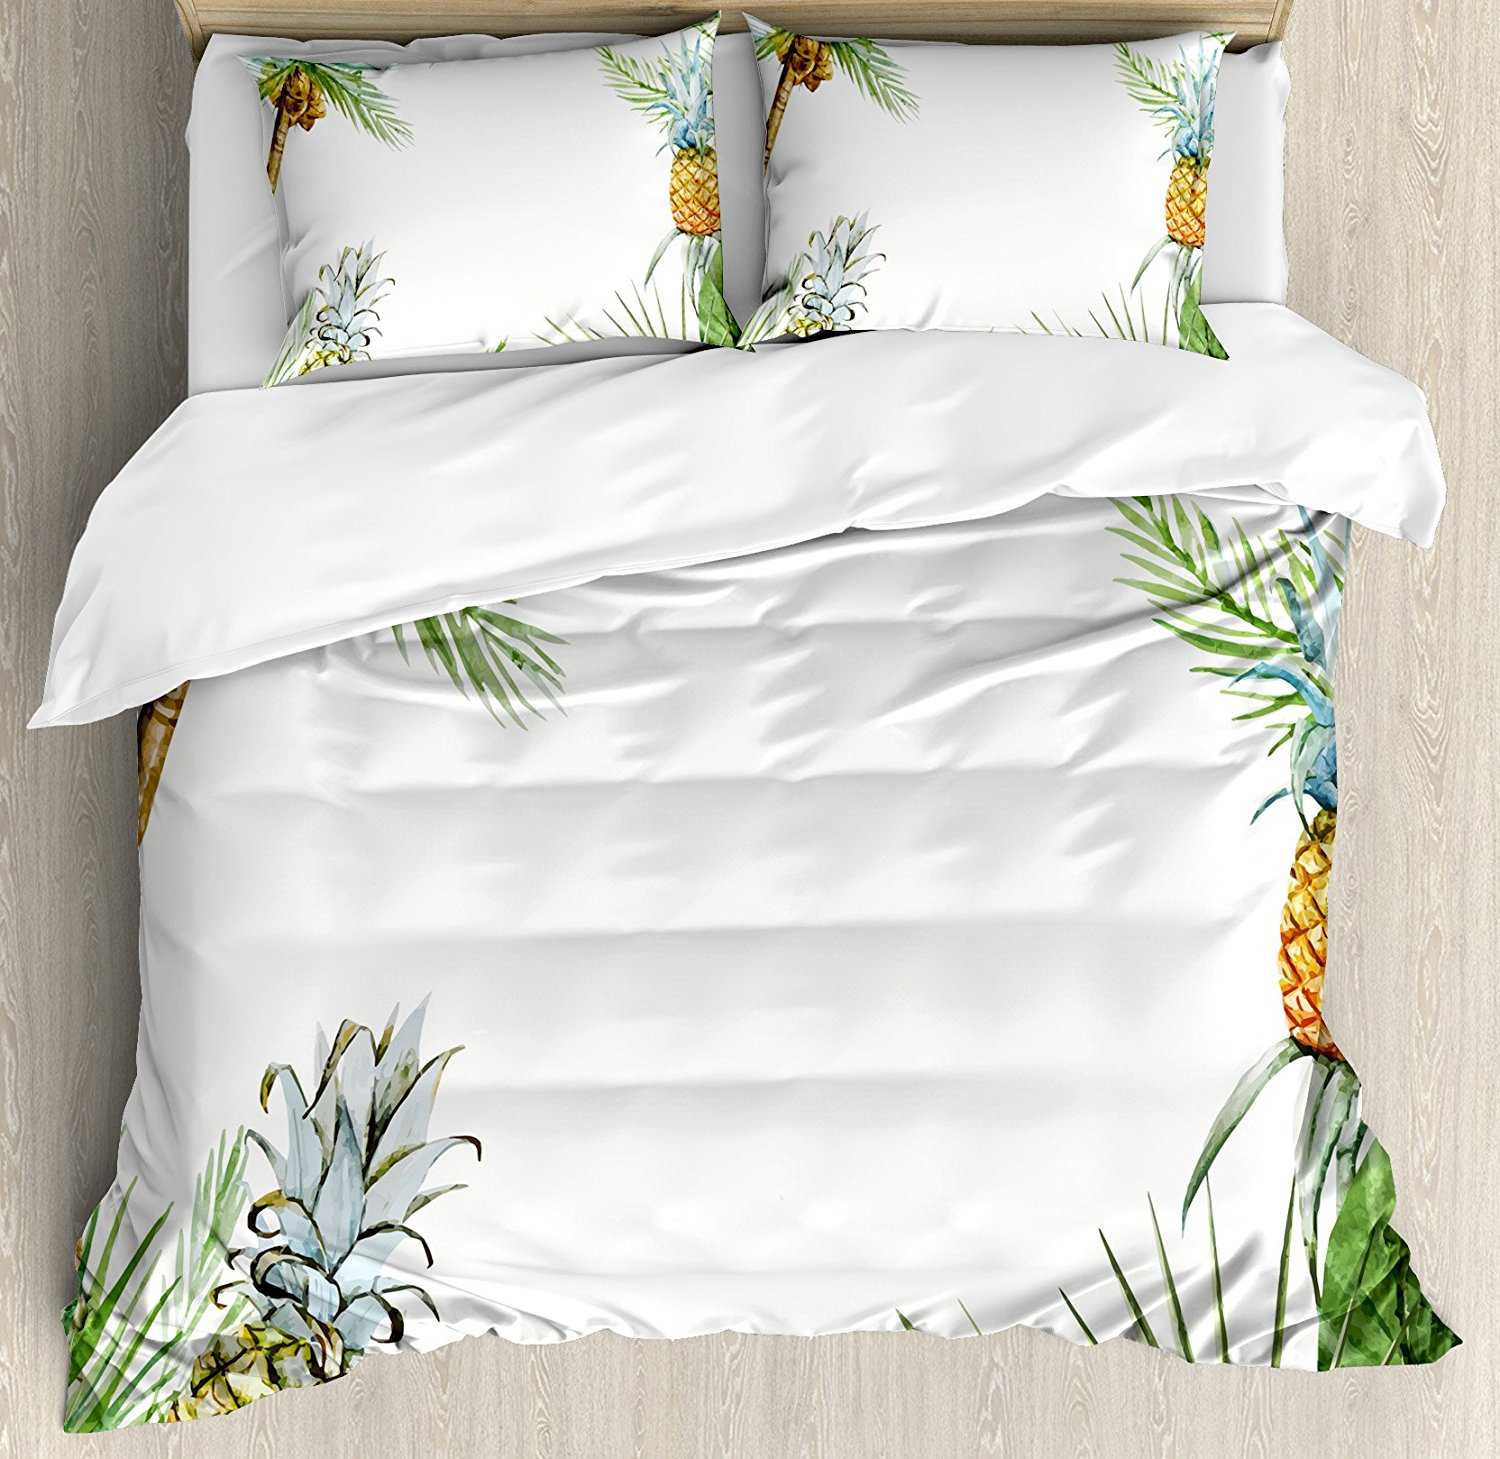 Pineapple Duvet Cover Set Watercolor Tropical Island Style Border Print Exotic Fruit Palm Trees and Leaves